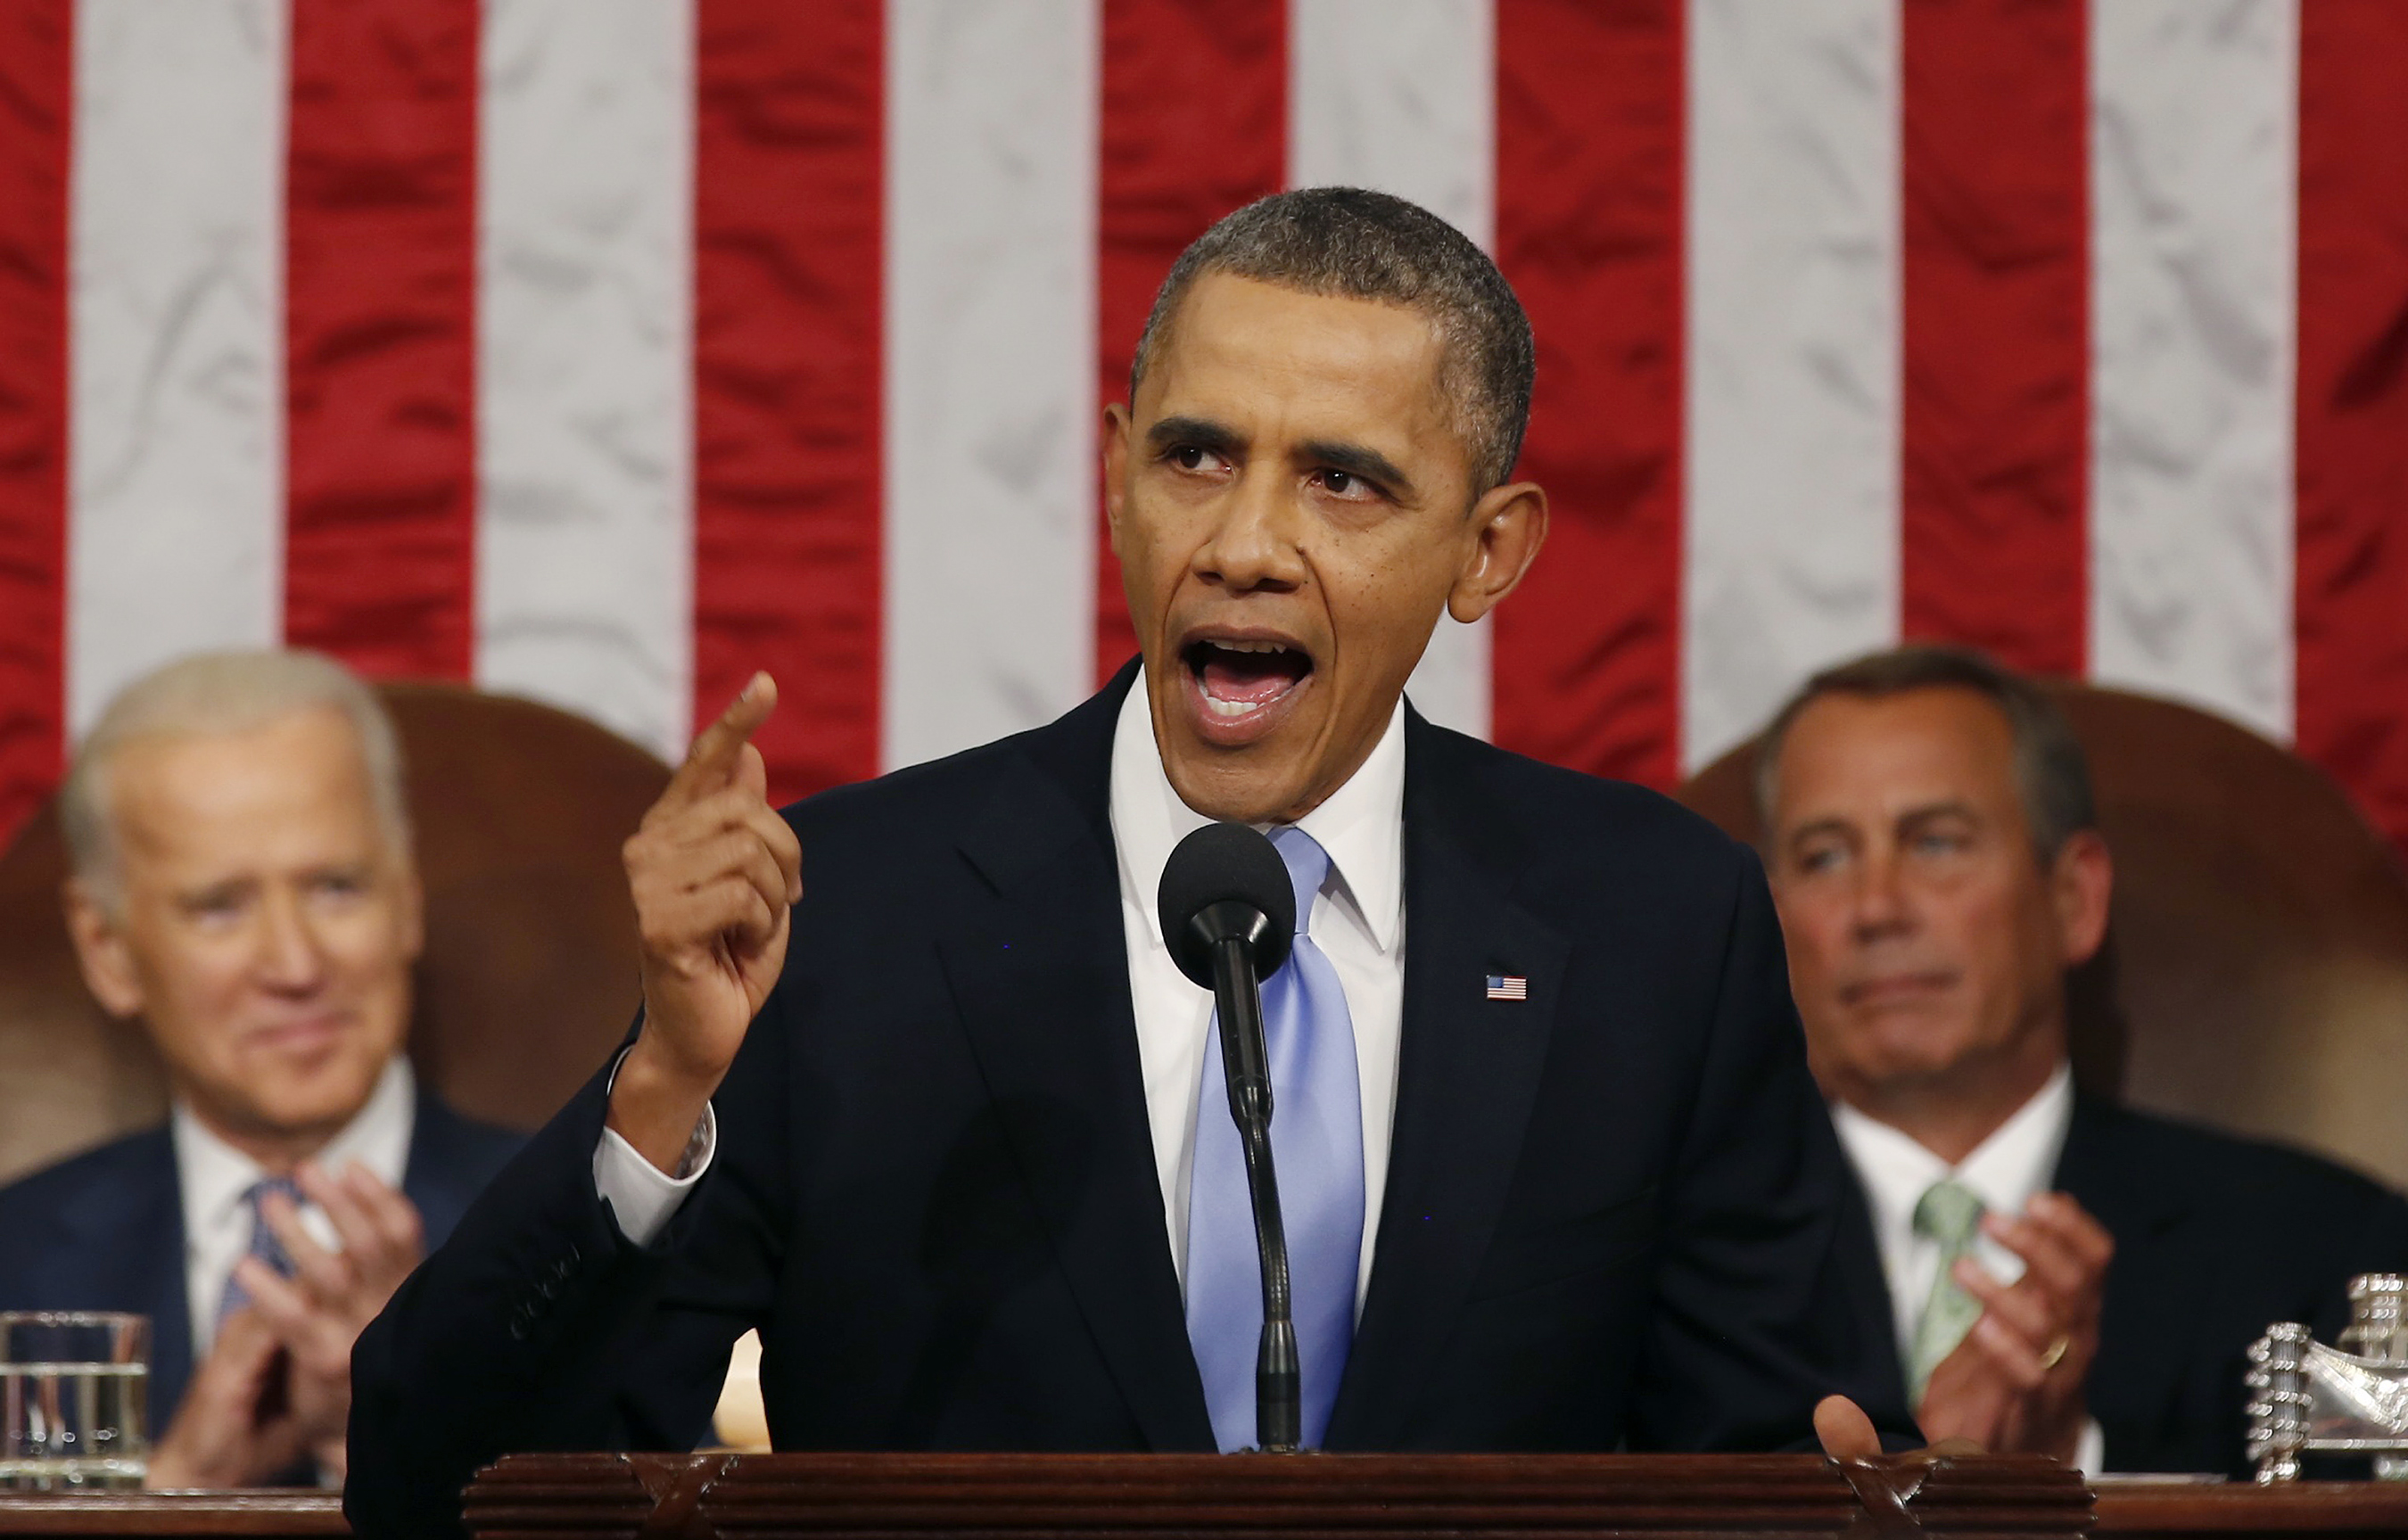 President Barack Obama delivers his State of the Union speech on Capitol Hill on January 28, 2014 in Washington, DC. Photo by Larry Downing-Pool/Getty Images